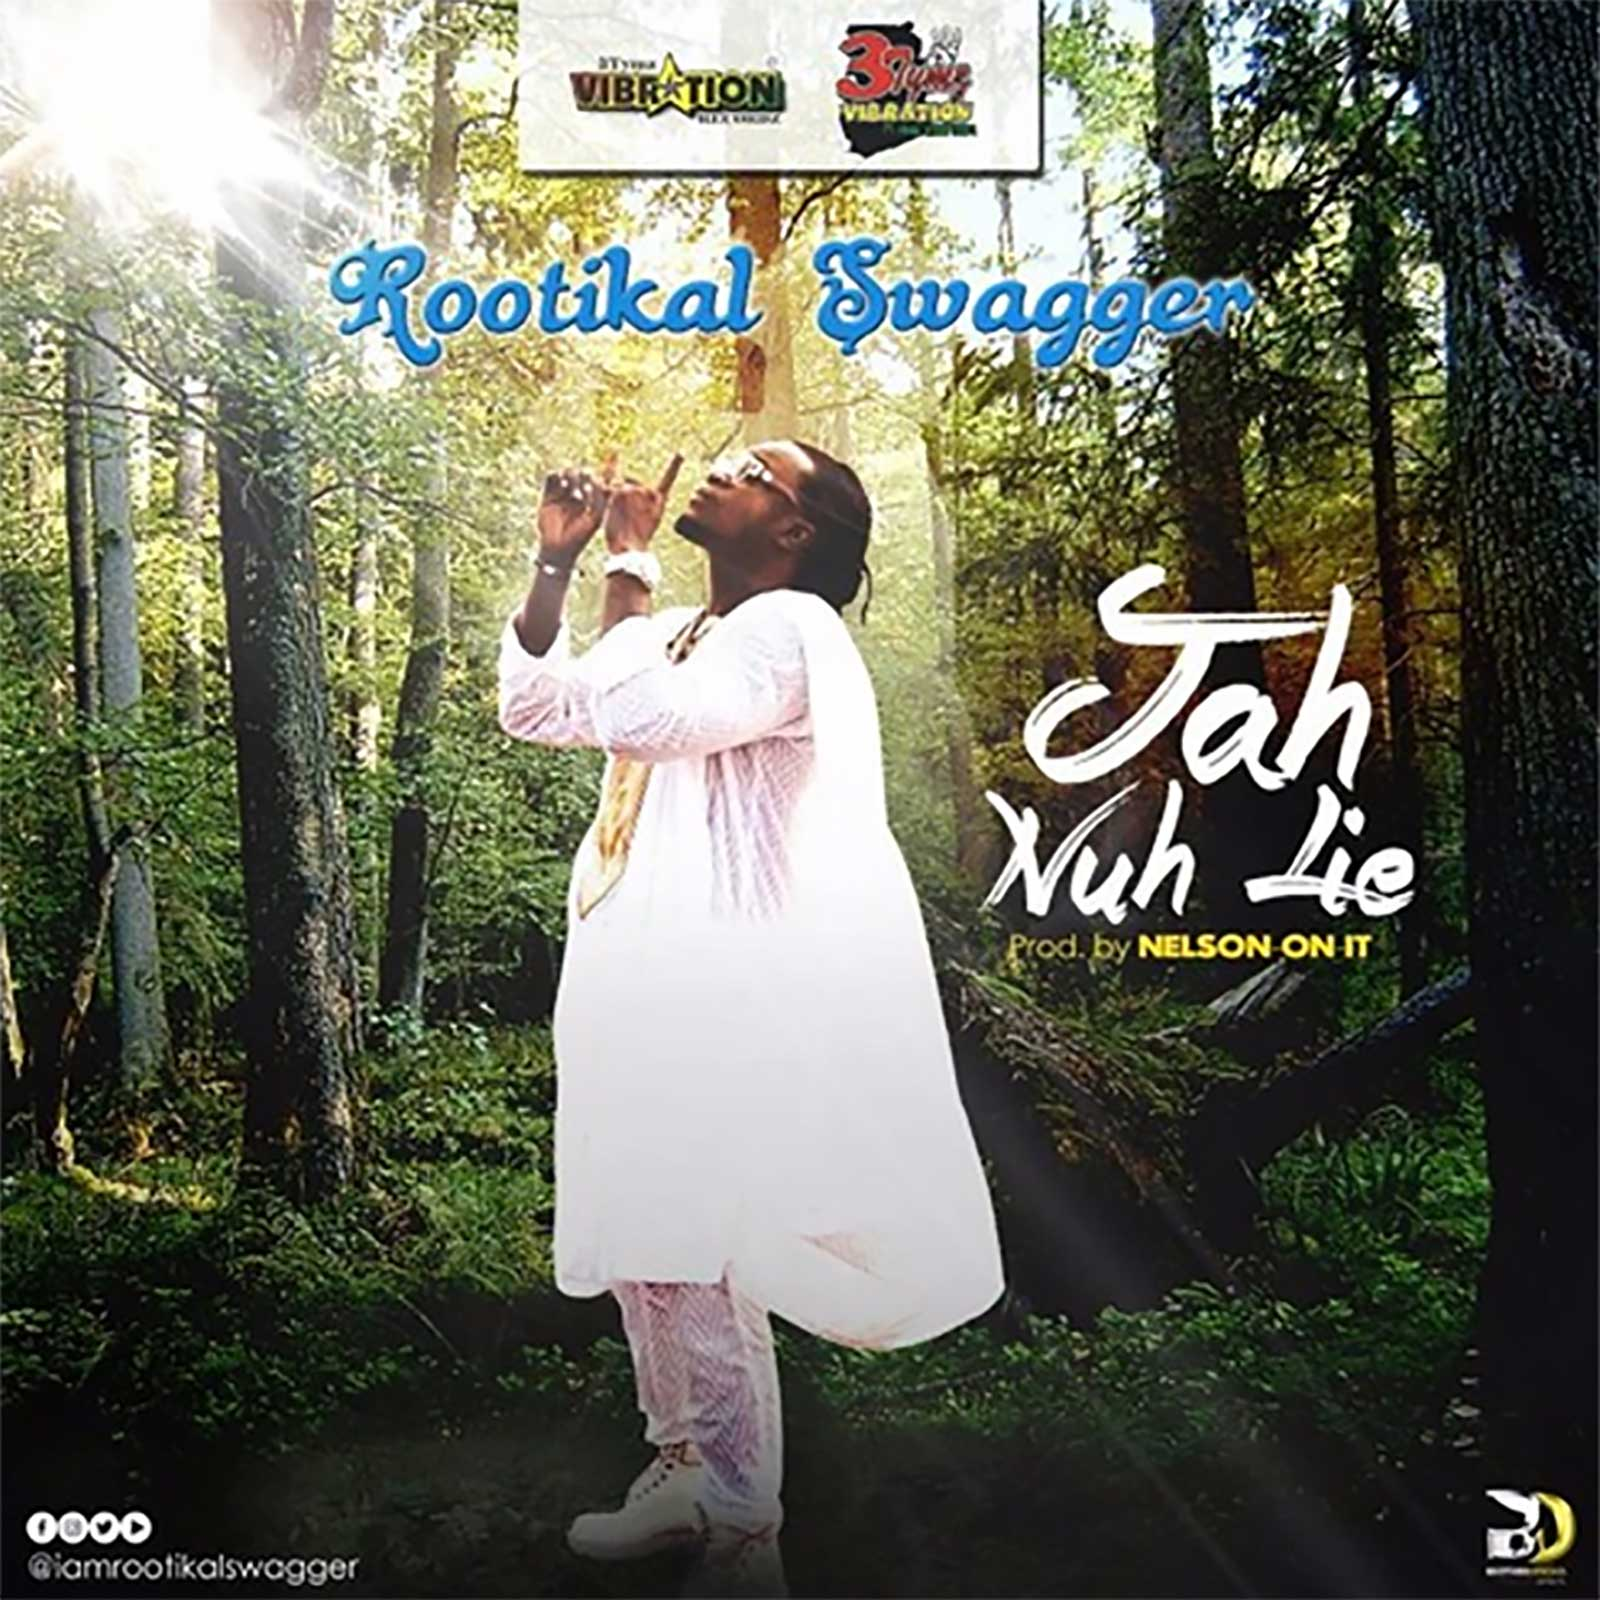 Jah Nuh Lie by Rootikal Swagger